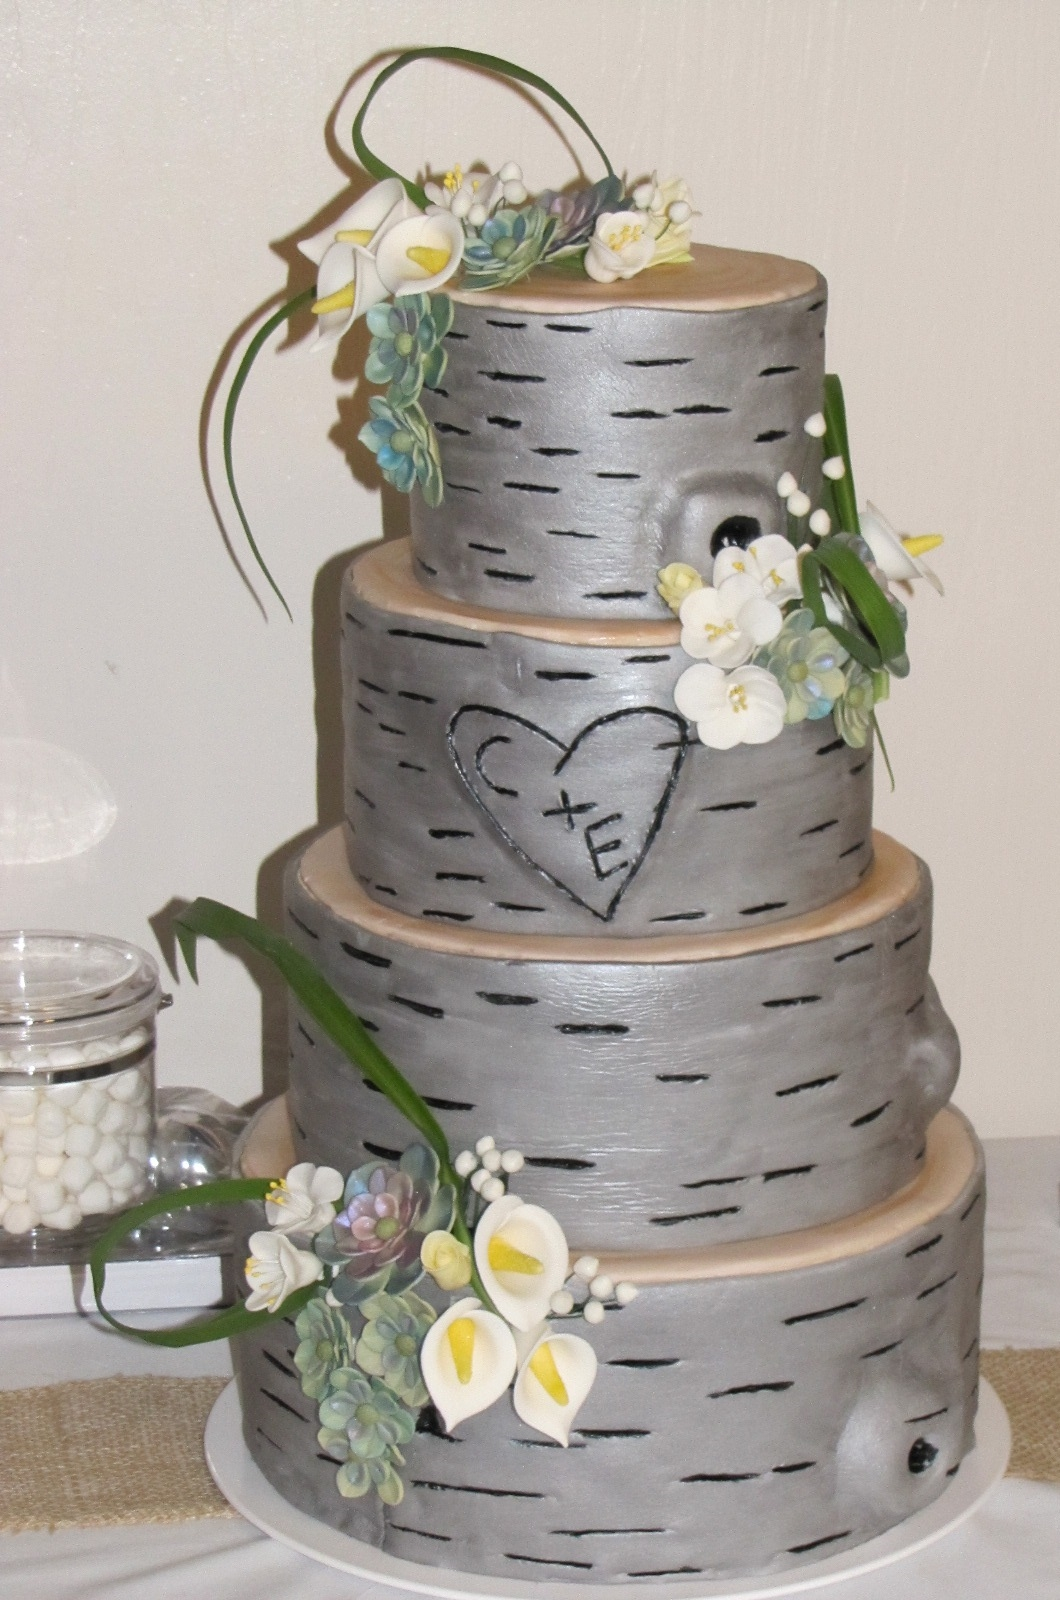 A Bride Brought Me A Picture Of A Birch Tree Cake On Pinterest I Tried To Replicate It This Is What I Came Up With It Is Decorated In Fon on Cake Central